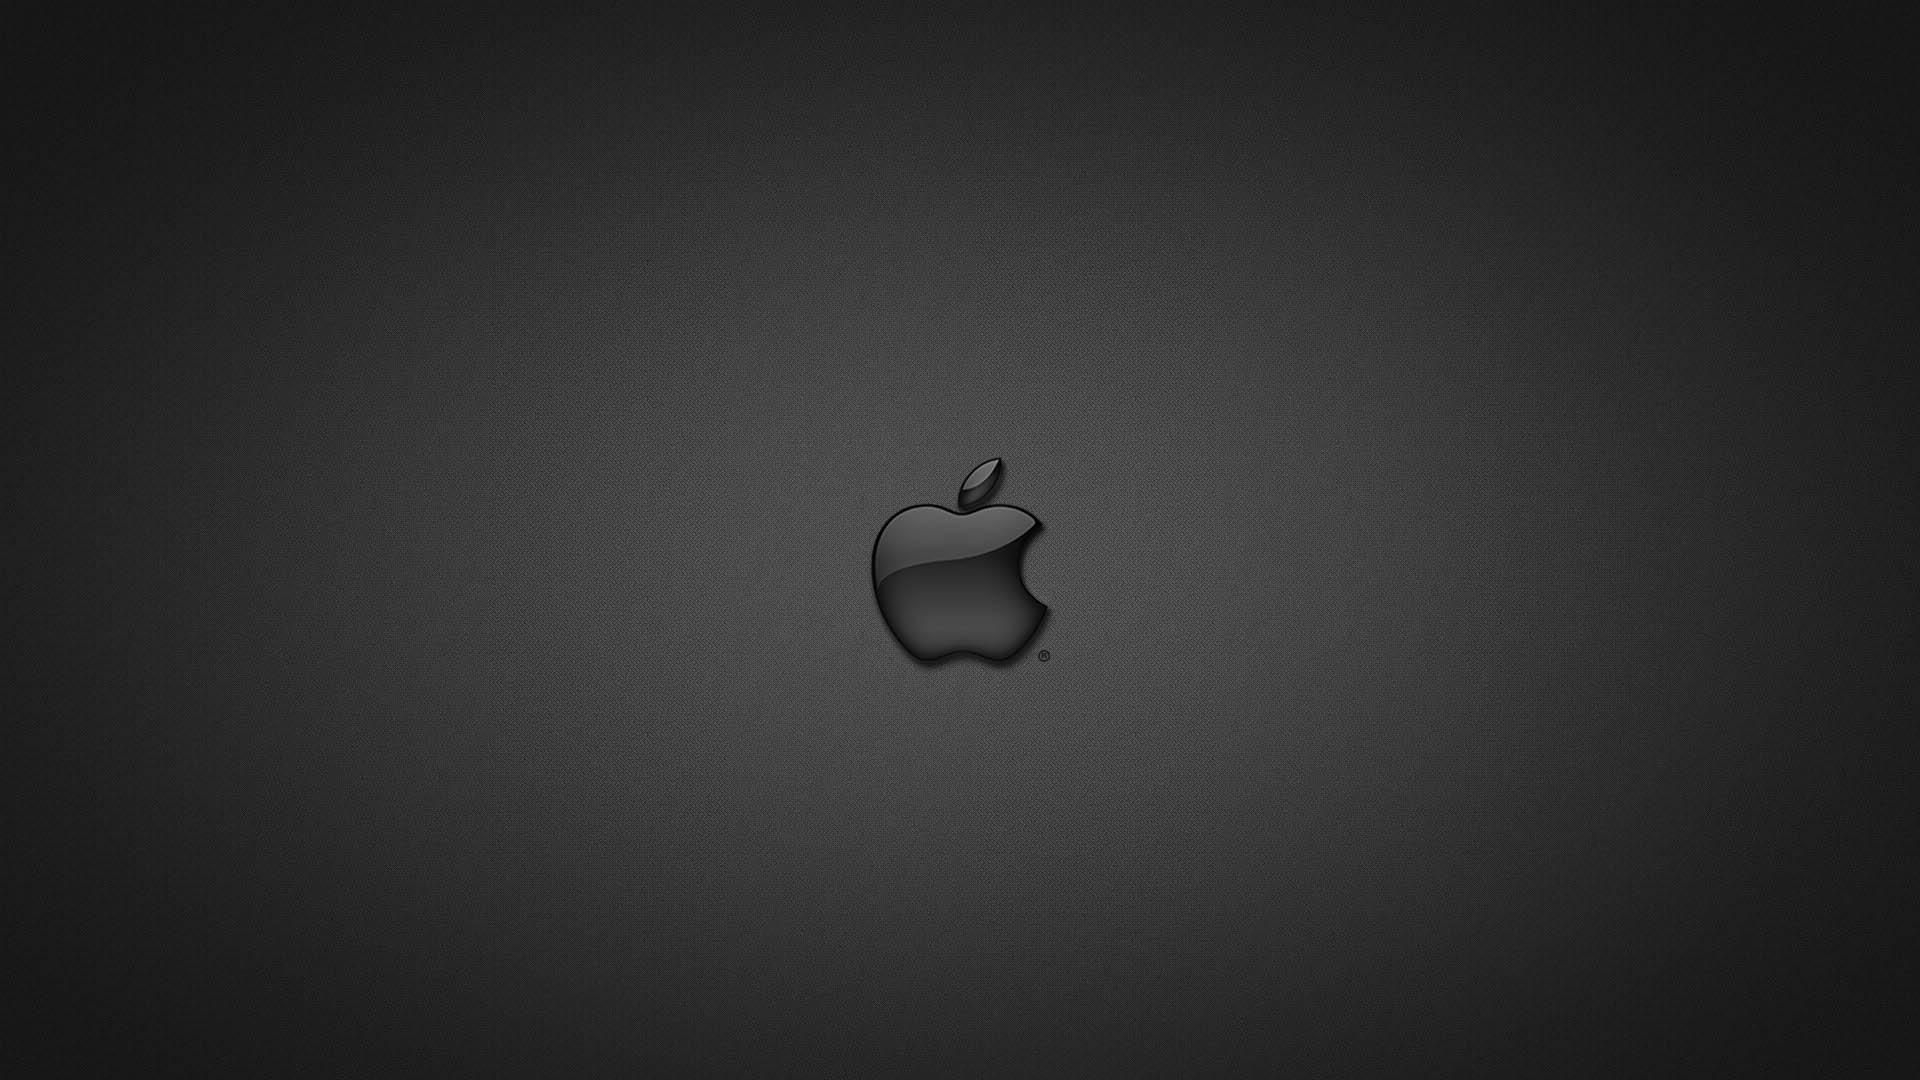 Apple Wallpapers HD 1080p Wallpaper Cave お気に入り